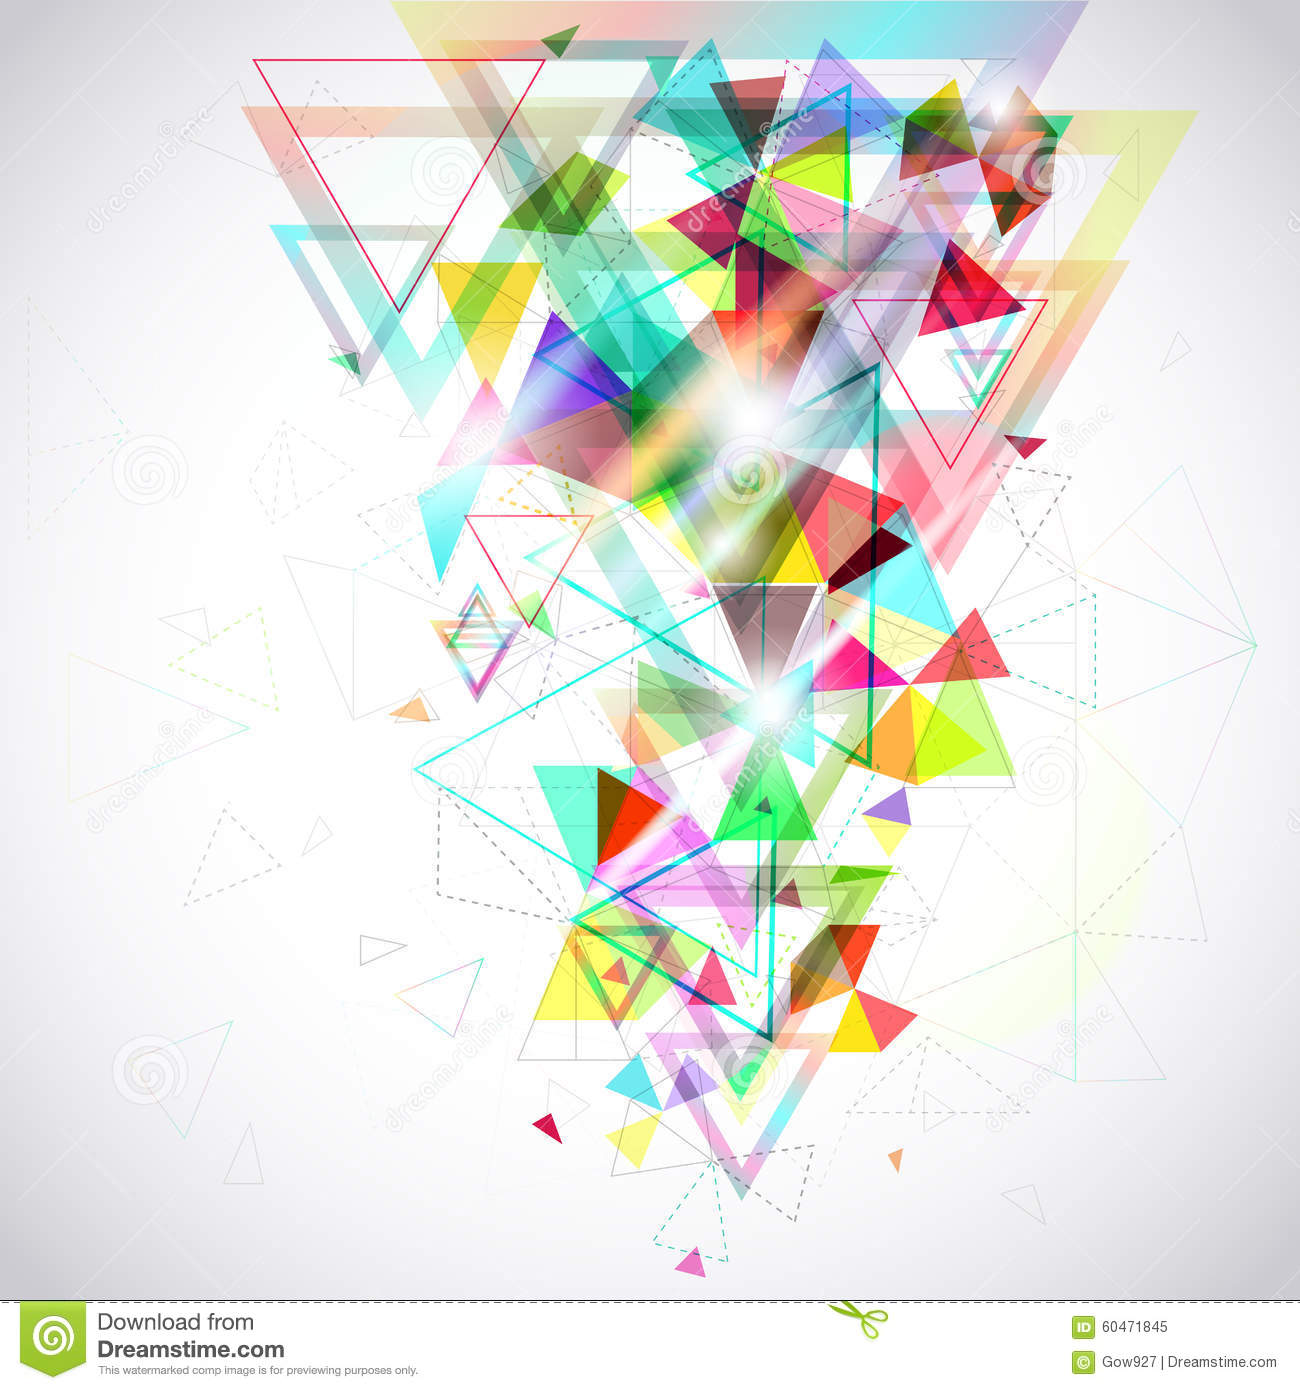 polygon shape abstract design - photo #13